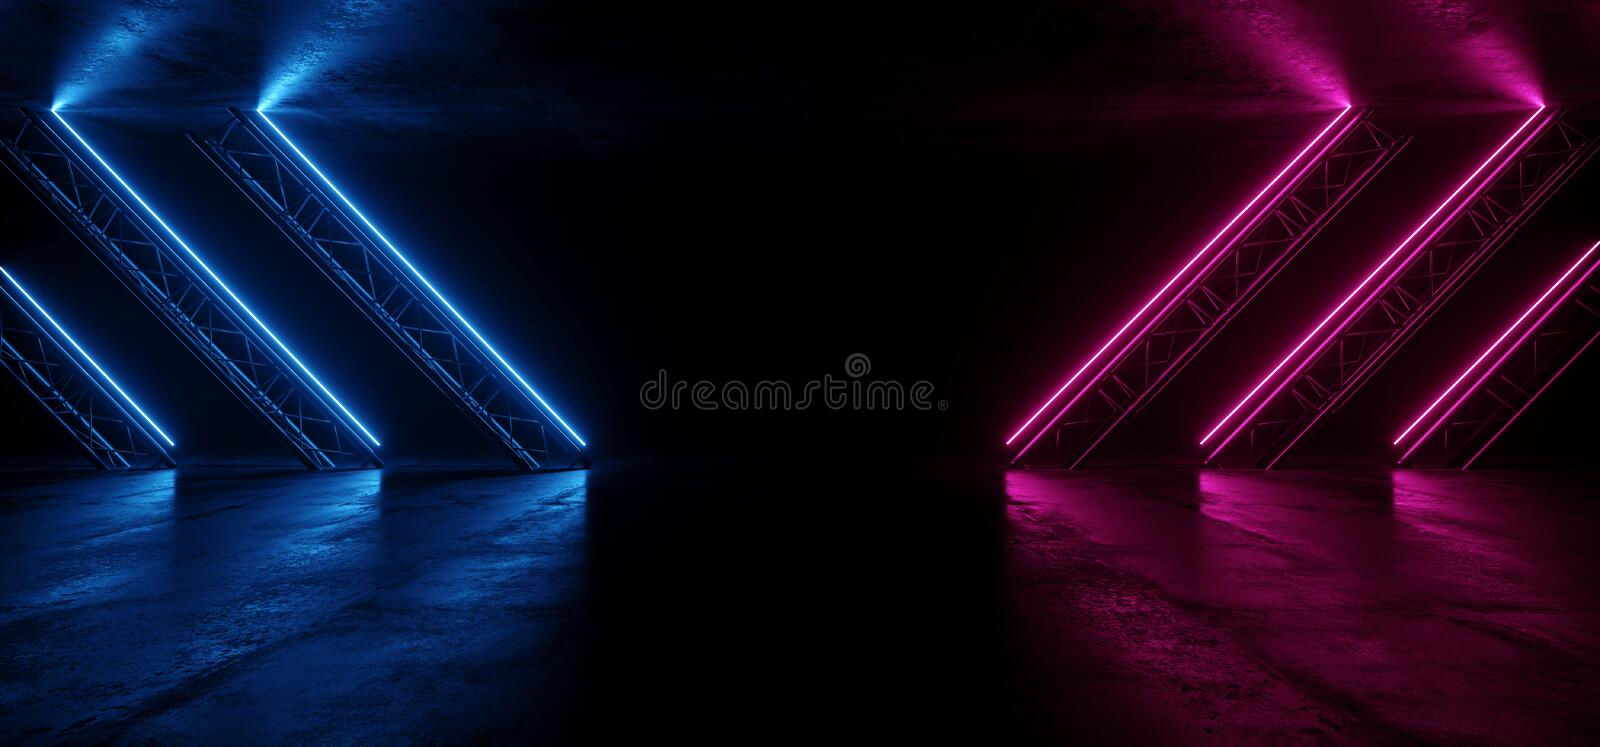 Neon Glowing Purple Blue Vibrant Sci Fi Futuristic Stage Podium Construction Metal Triangle Concrete Grunge Reflective Dark Night. Virtual Show Background Laser royalty free illustration